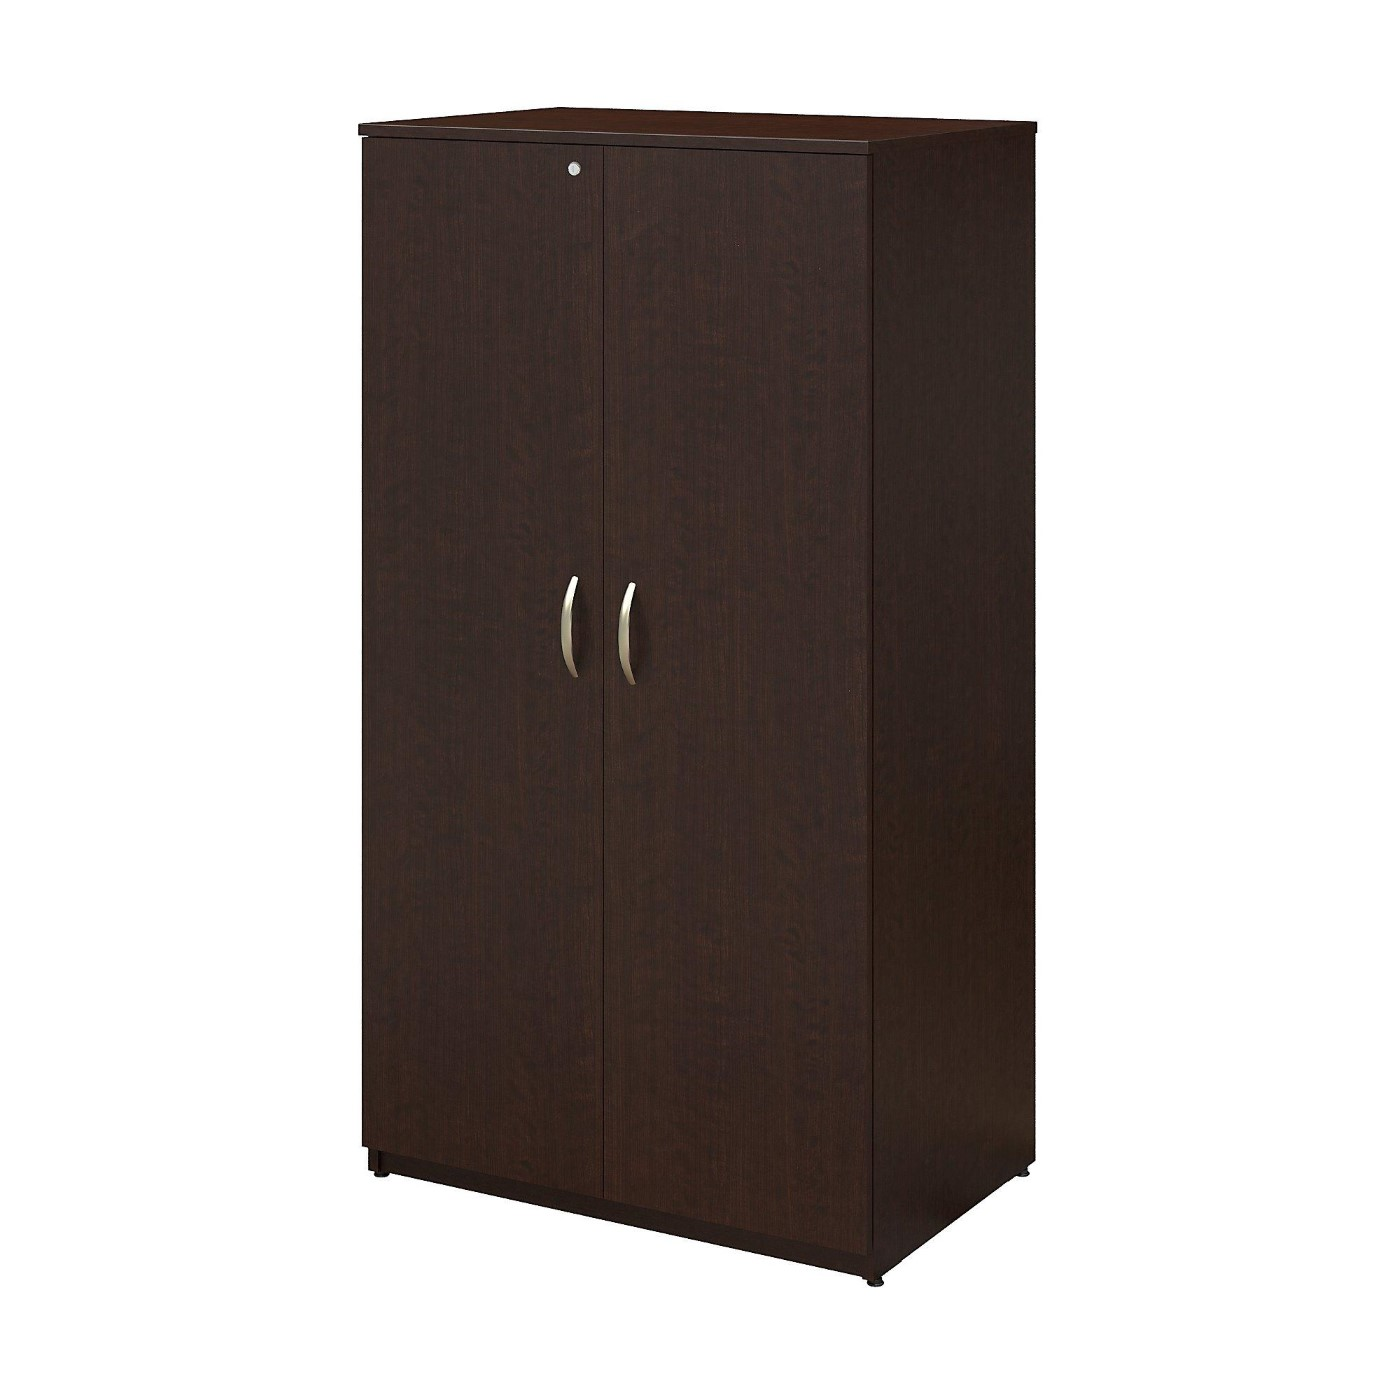 <font color=#c60><b>BUSH BUSINESS FURNITURE EASY OFFICE 36W WARDROBE STORAGE CABINET. FREE SHIPPING</font></b></font></b>